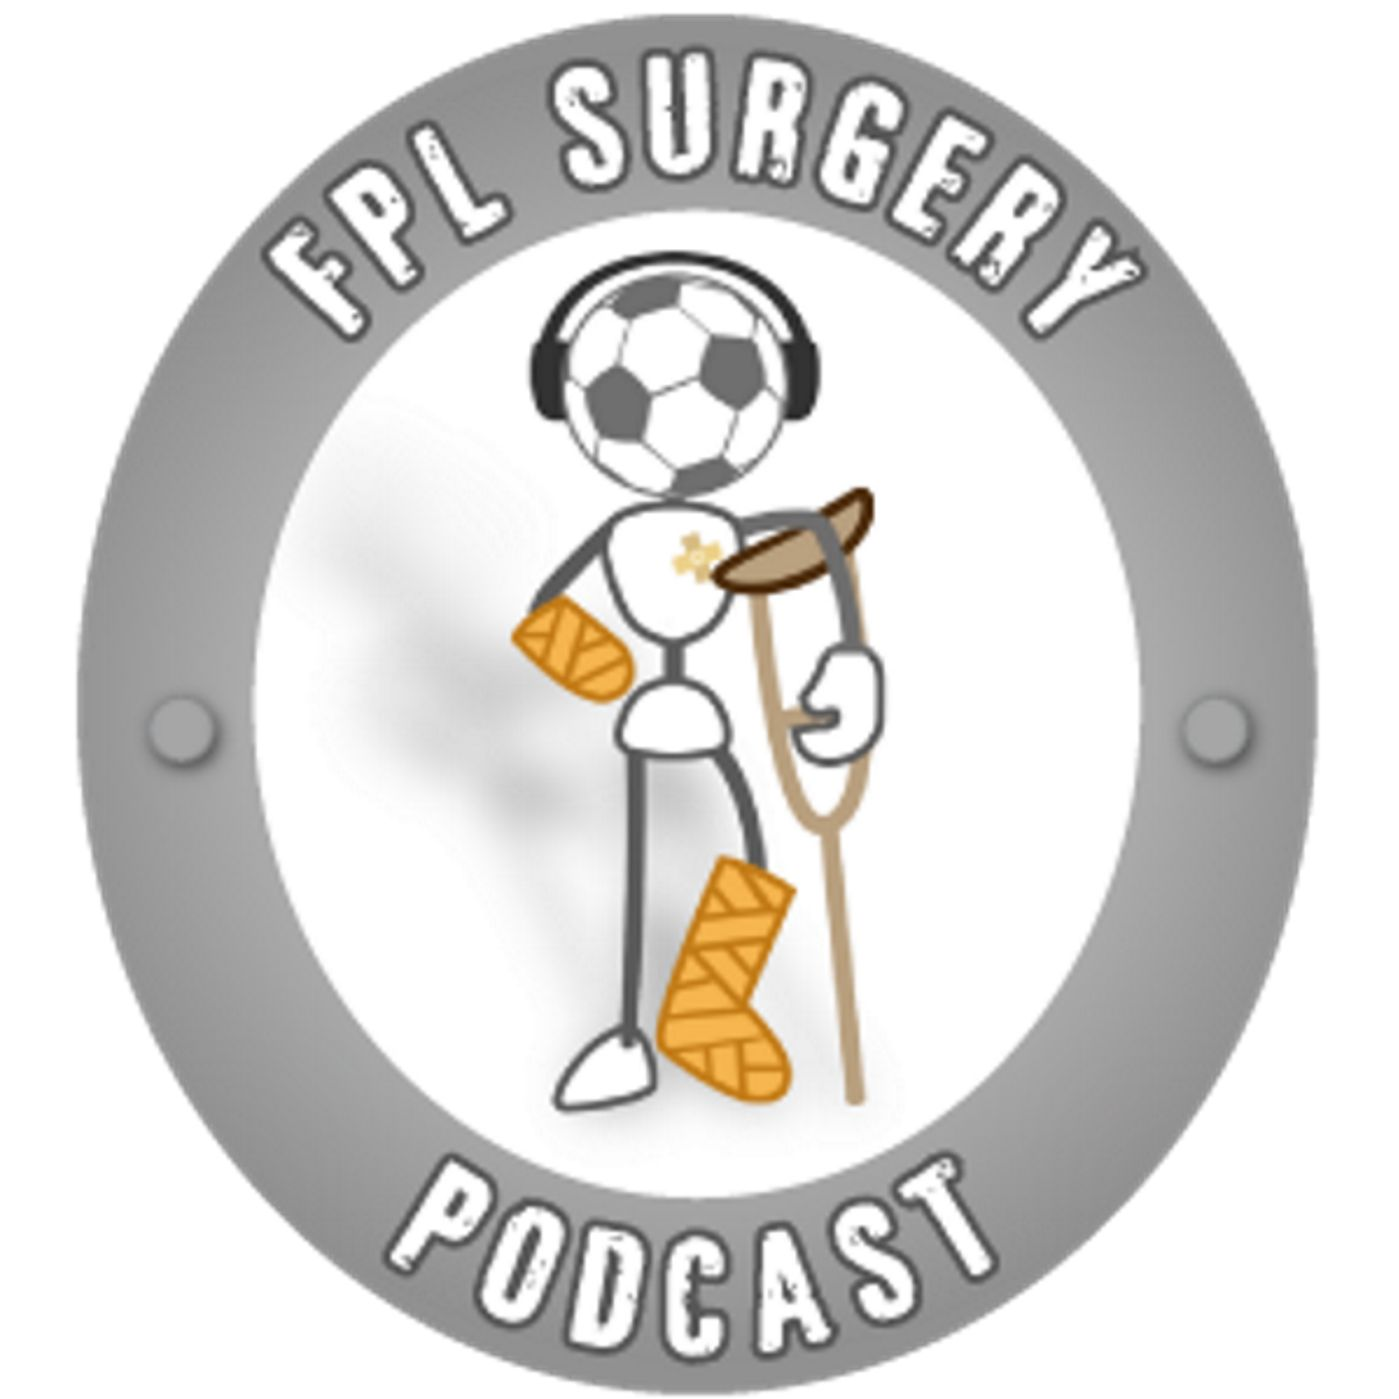 109thEpi - GW12 - Liverpool pickle - FPL Surgery Podcast